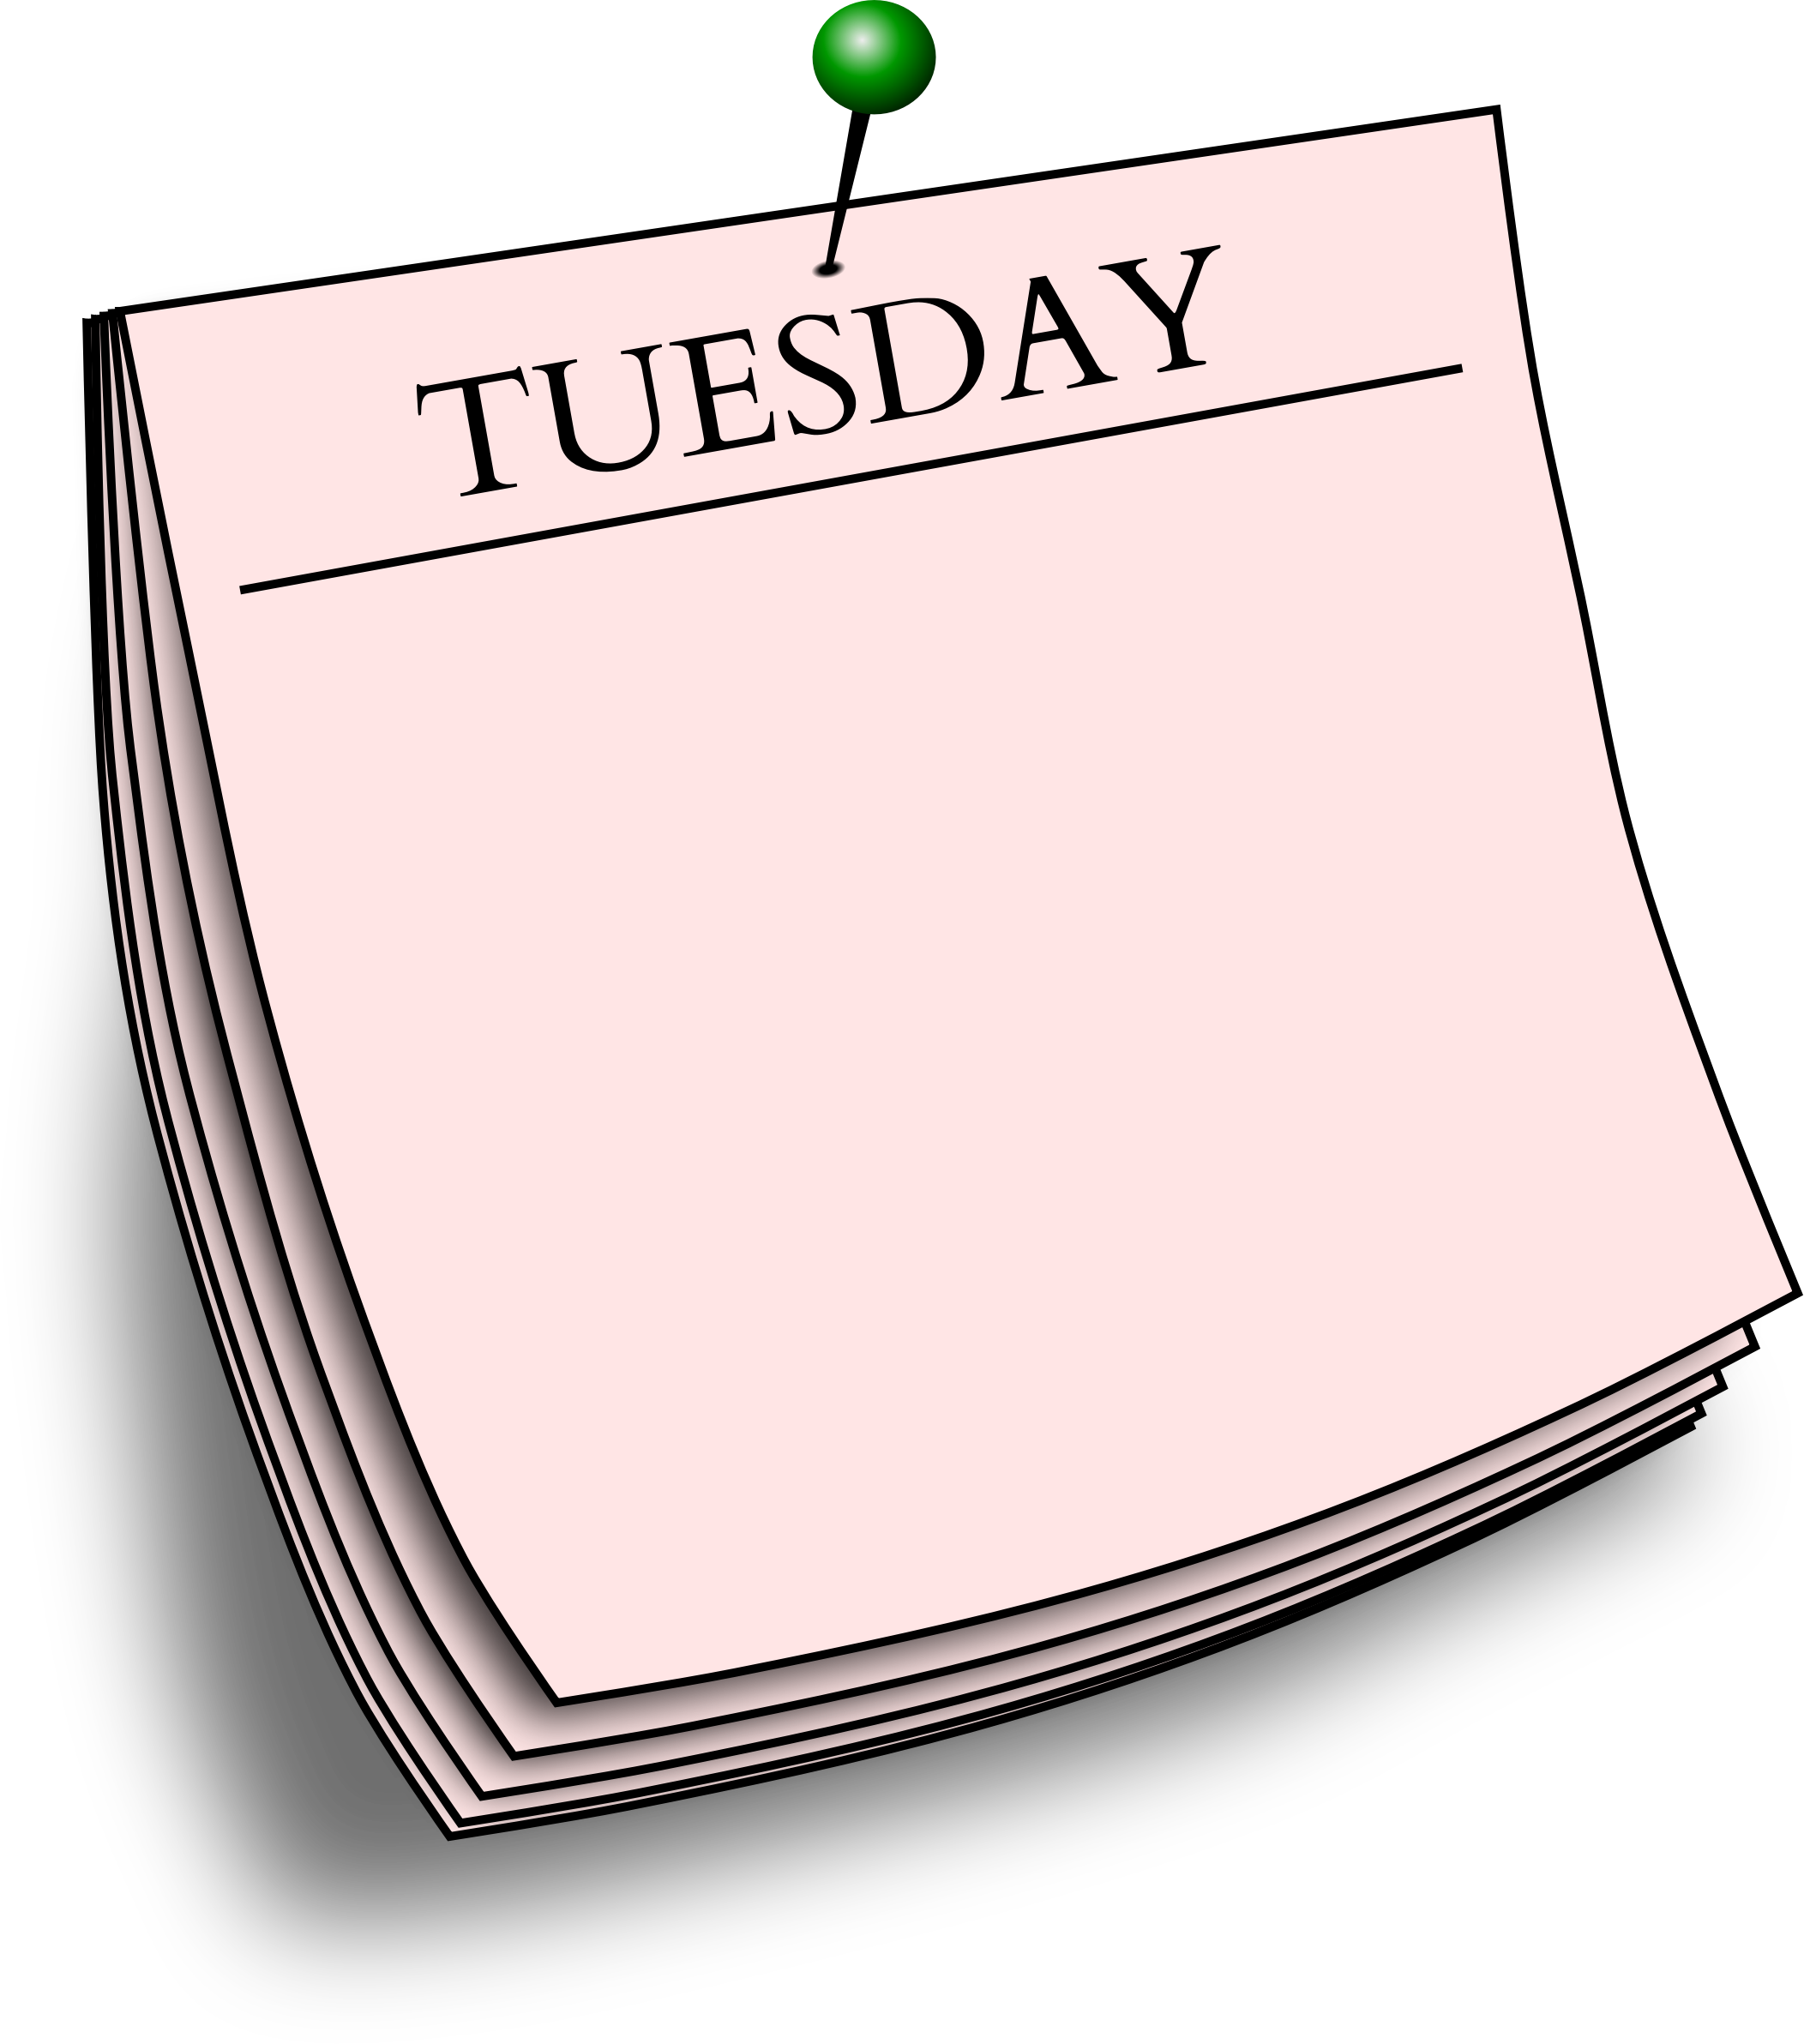 Daily note - Tuesday by Firkin